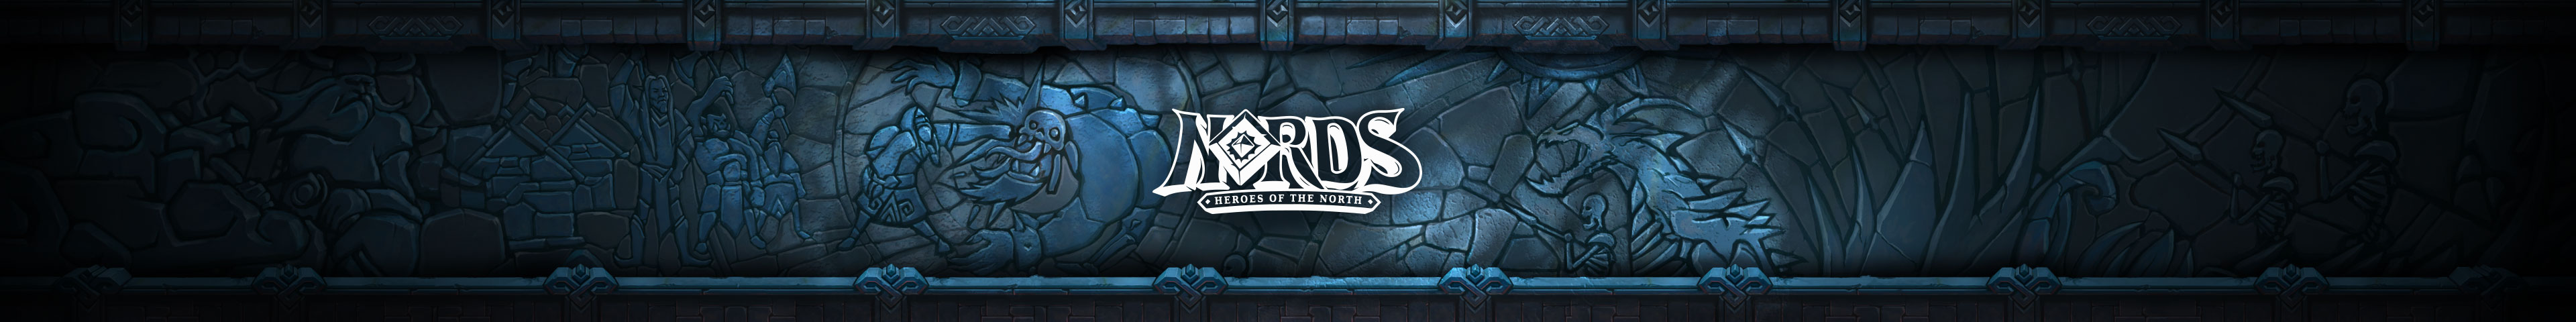 Nords: Heroes of the North Forum